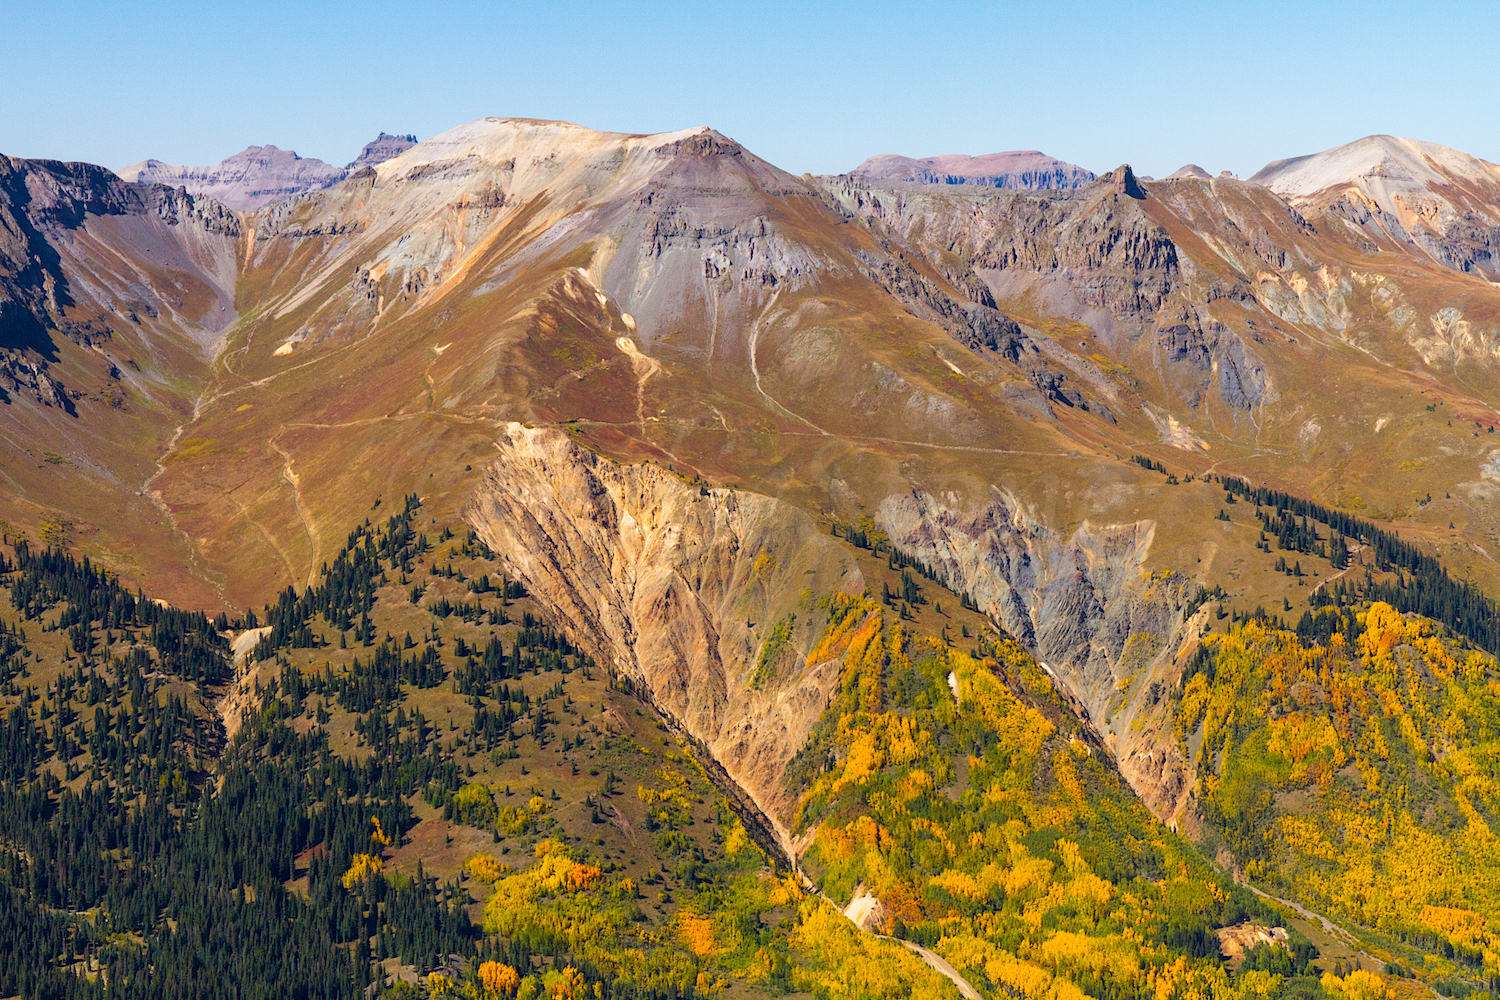 Red Mountain #3, Image # 6430